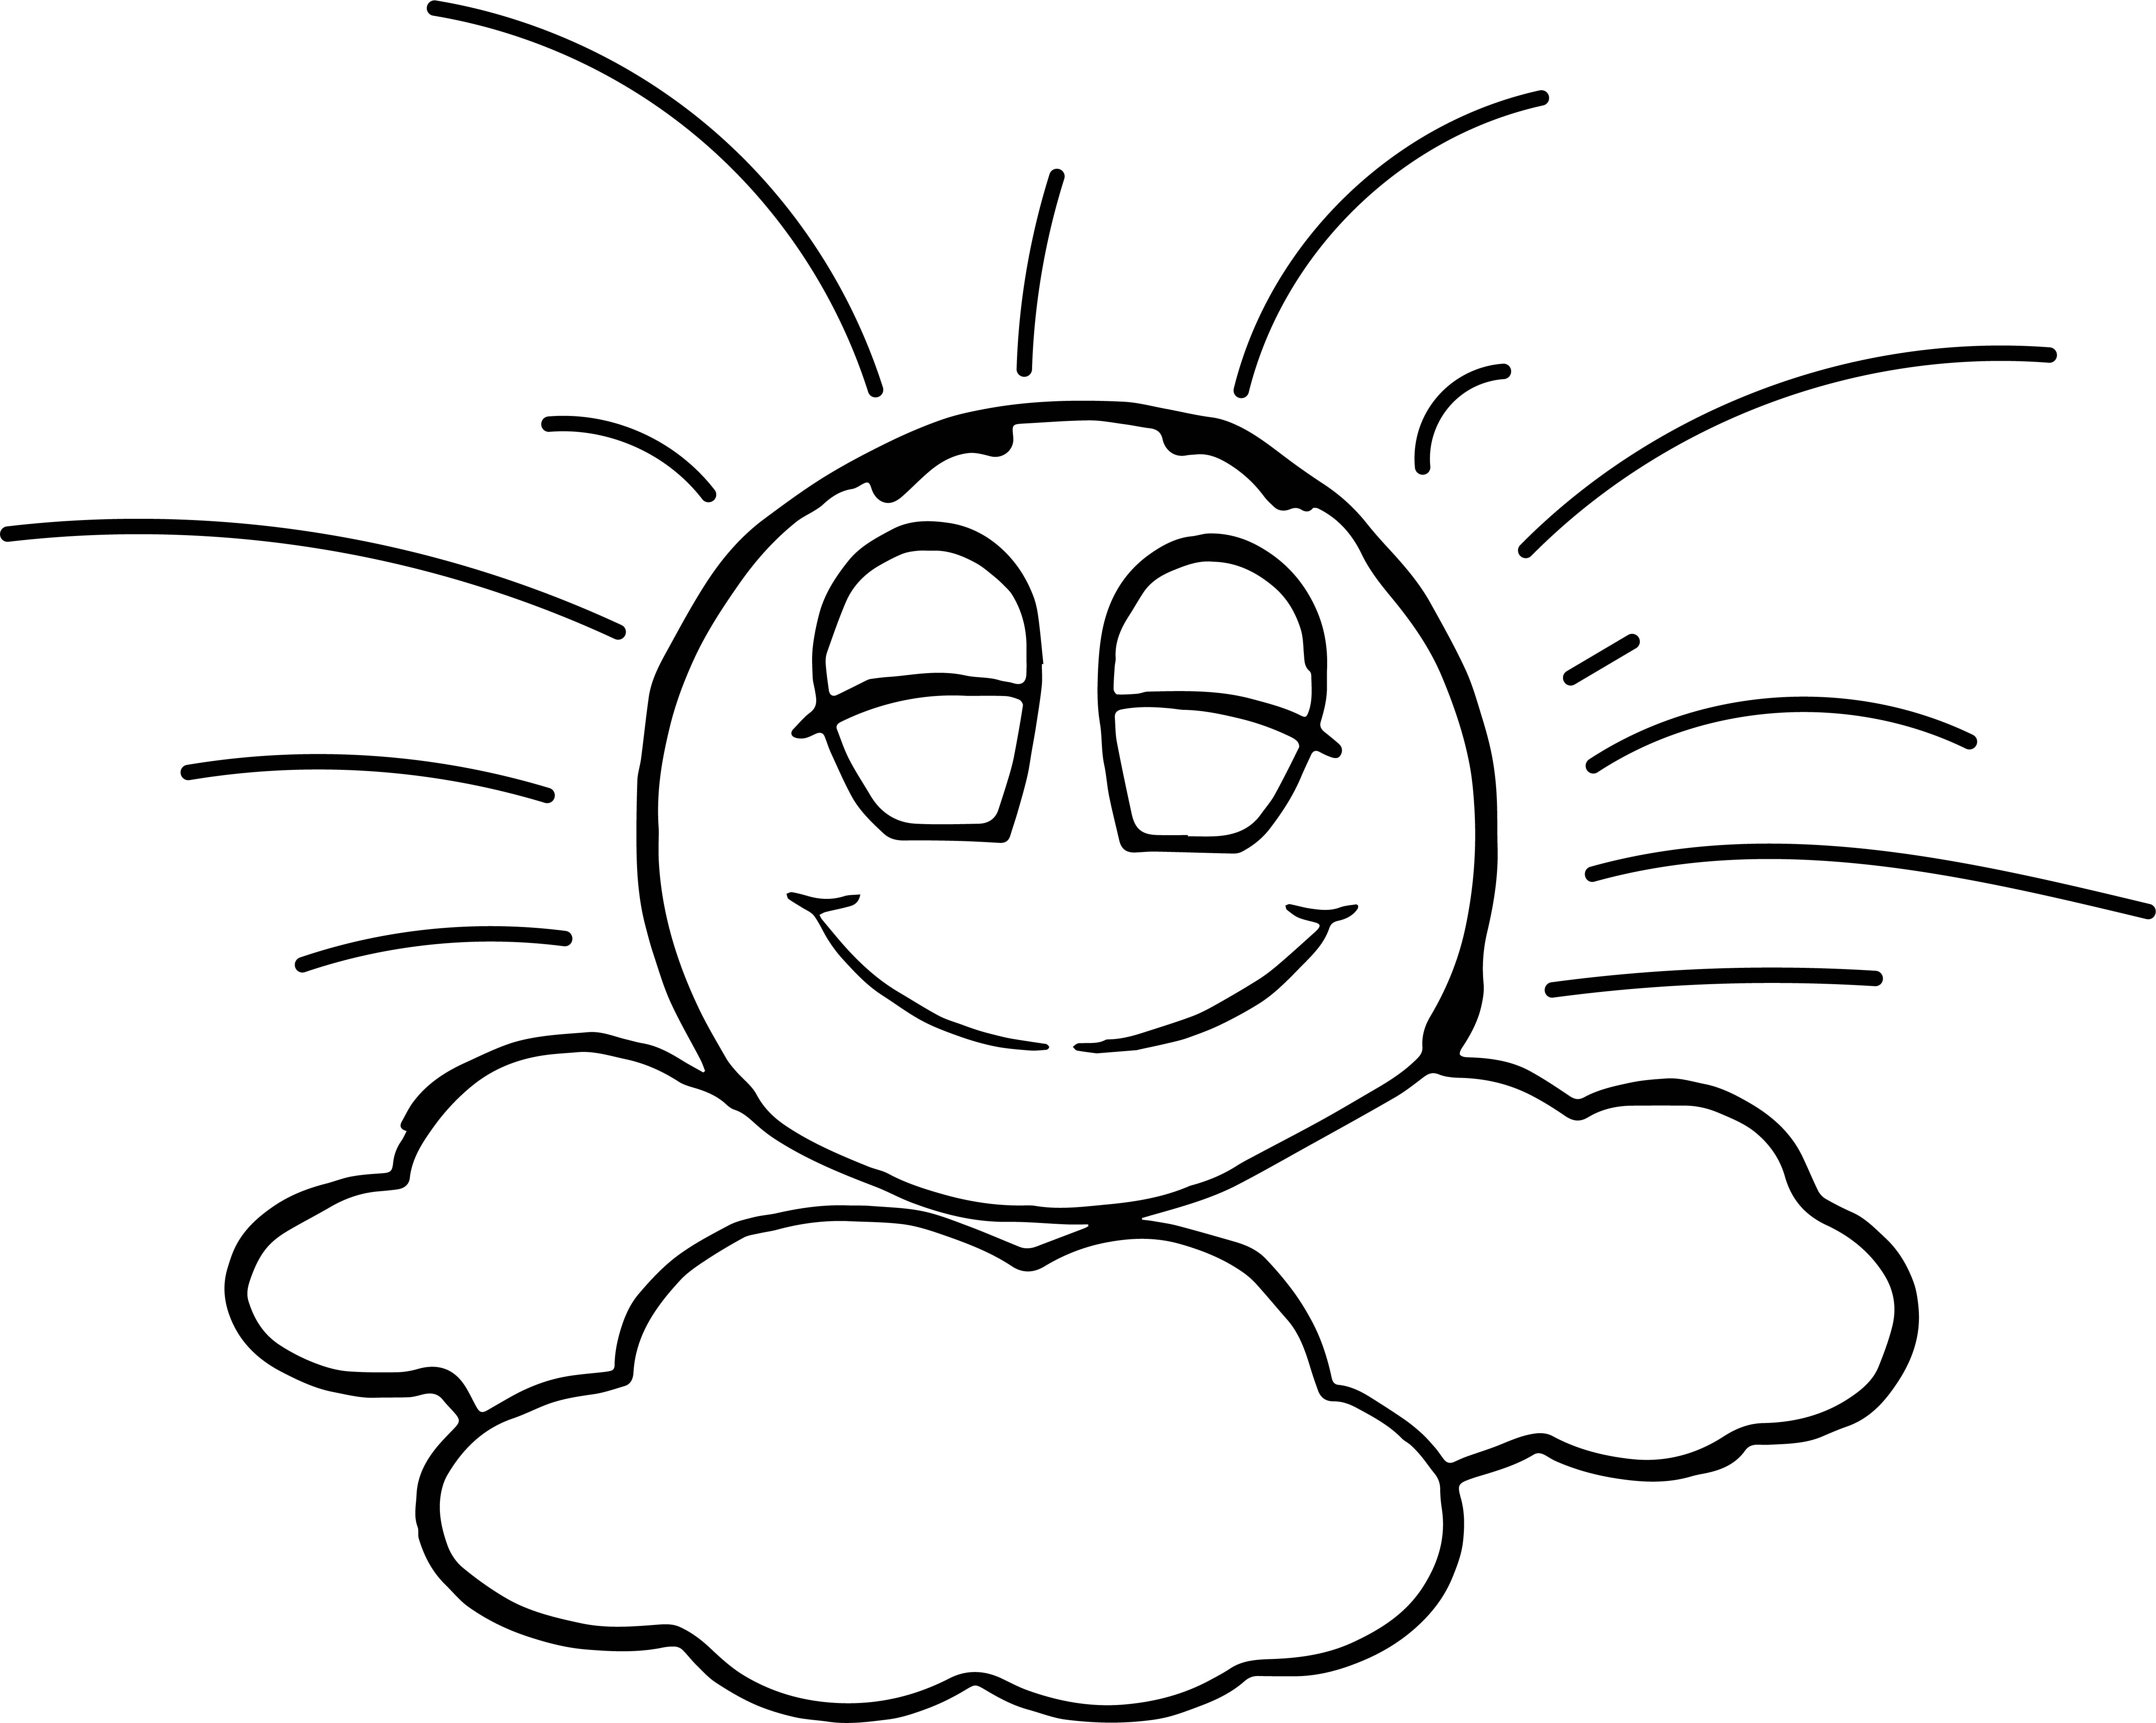 Emoticon In Seventh Heaven Sunny Sky Coloring Page Wecoloringpage Com Coloring Pages Seven Heavens Animal Drawings